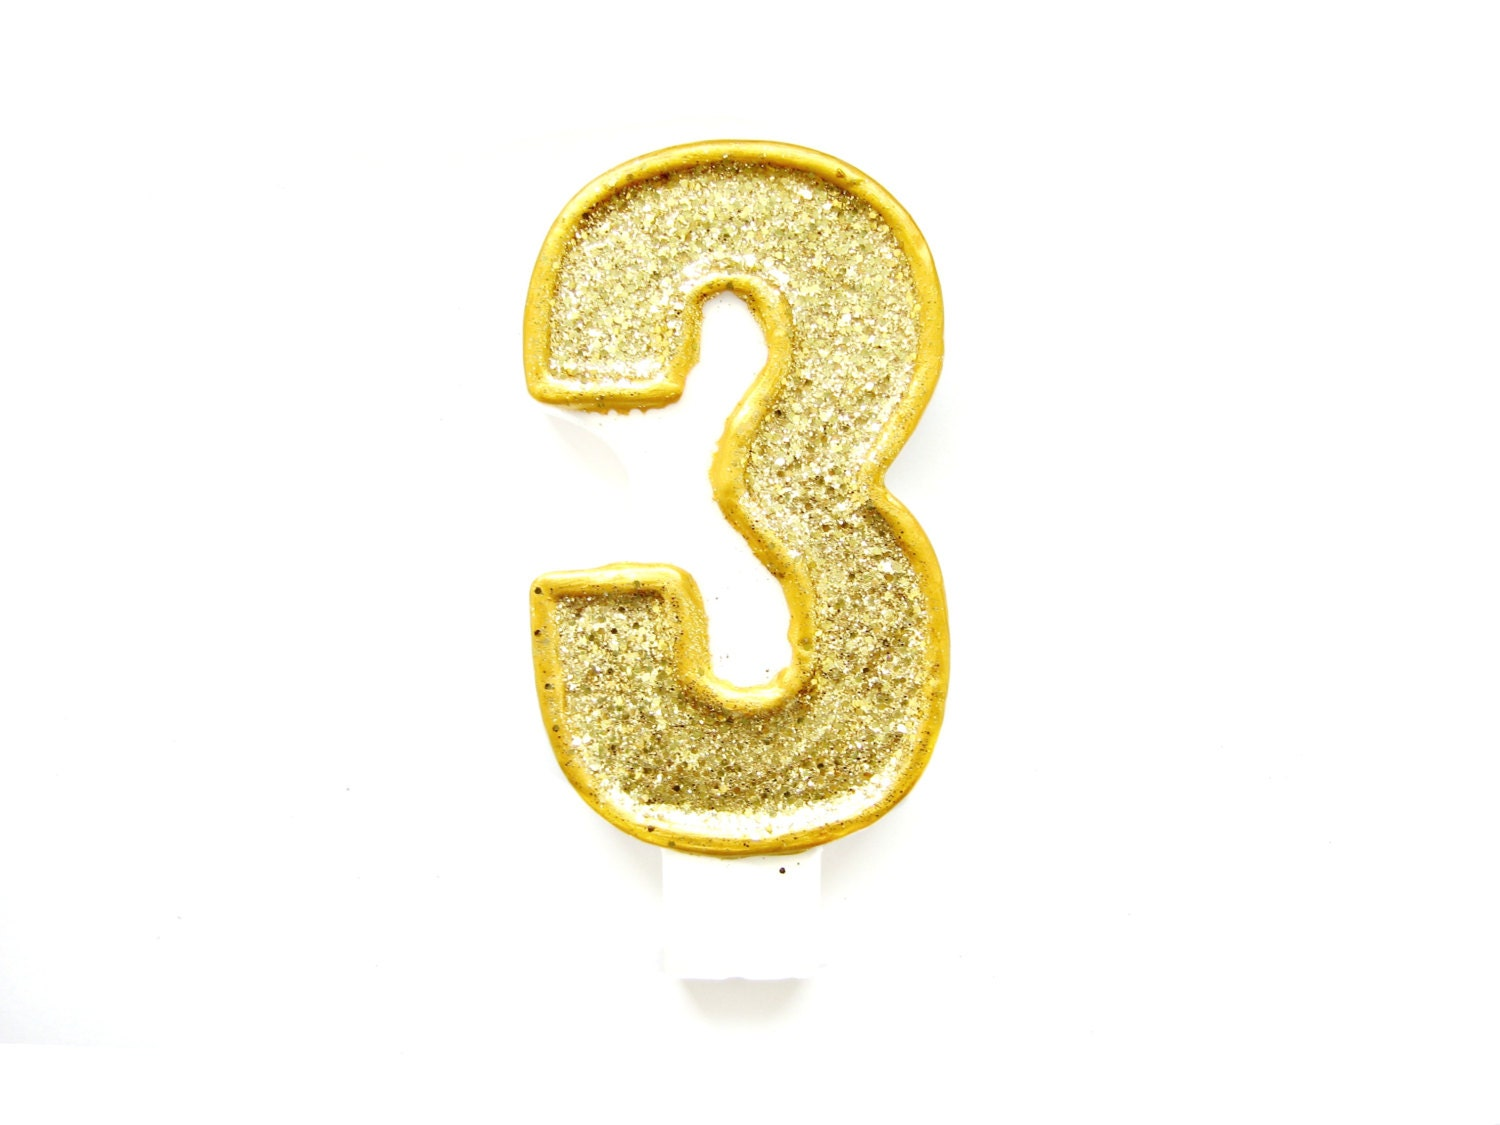 Giant Gold Glitter Number 3 Birthday Candle